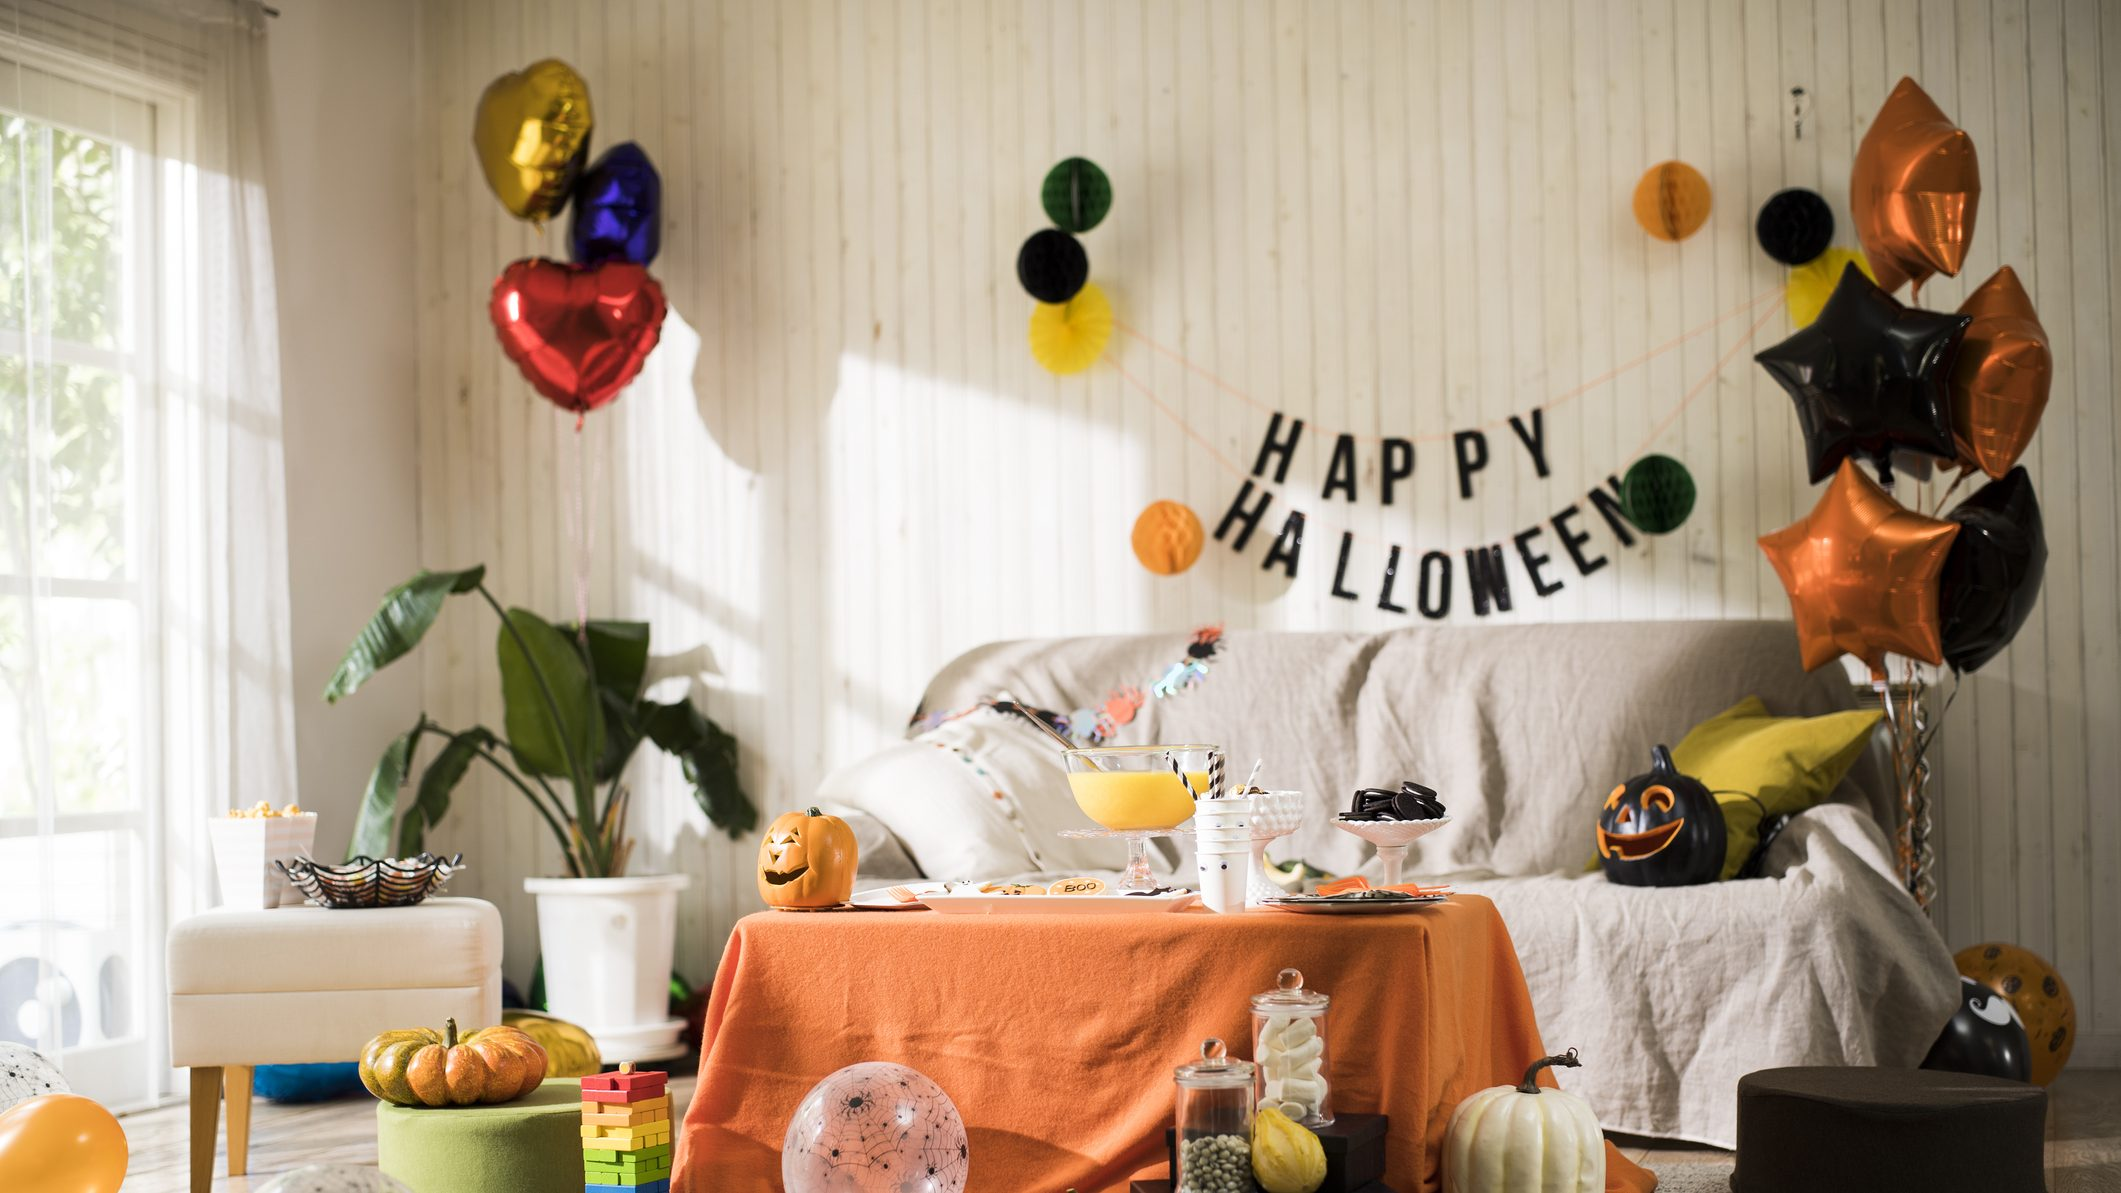 The Halloween party is ready.